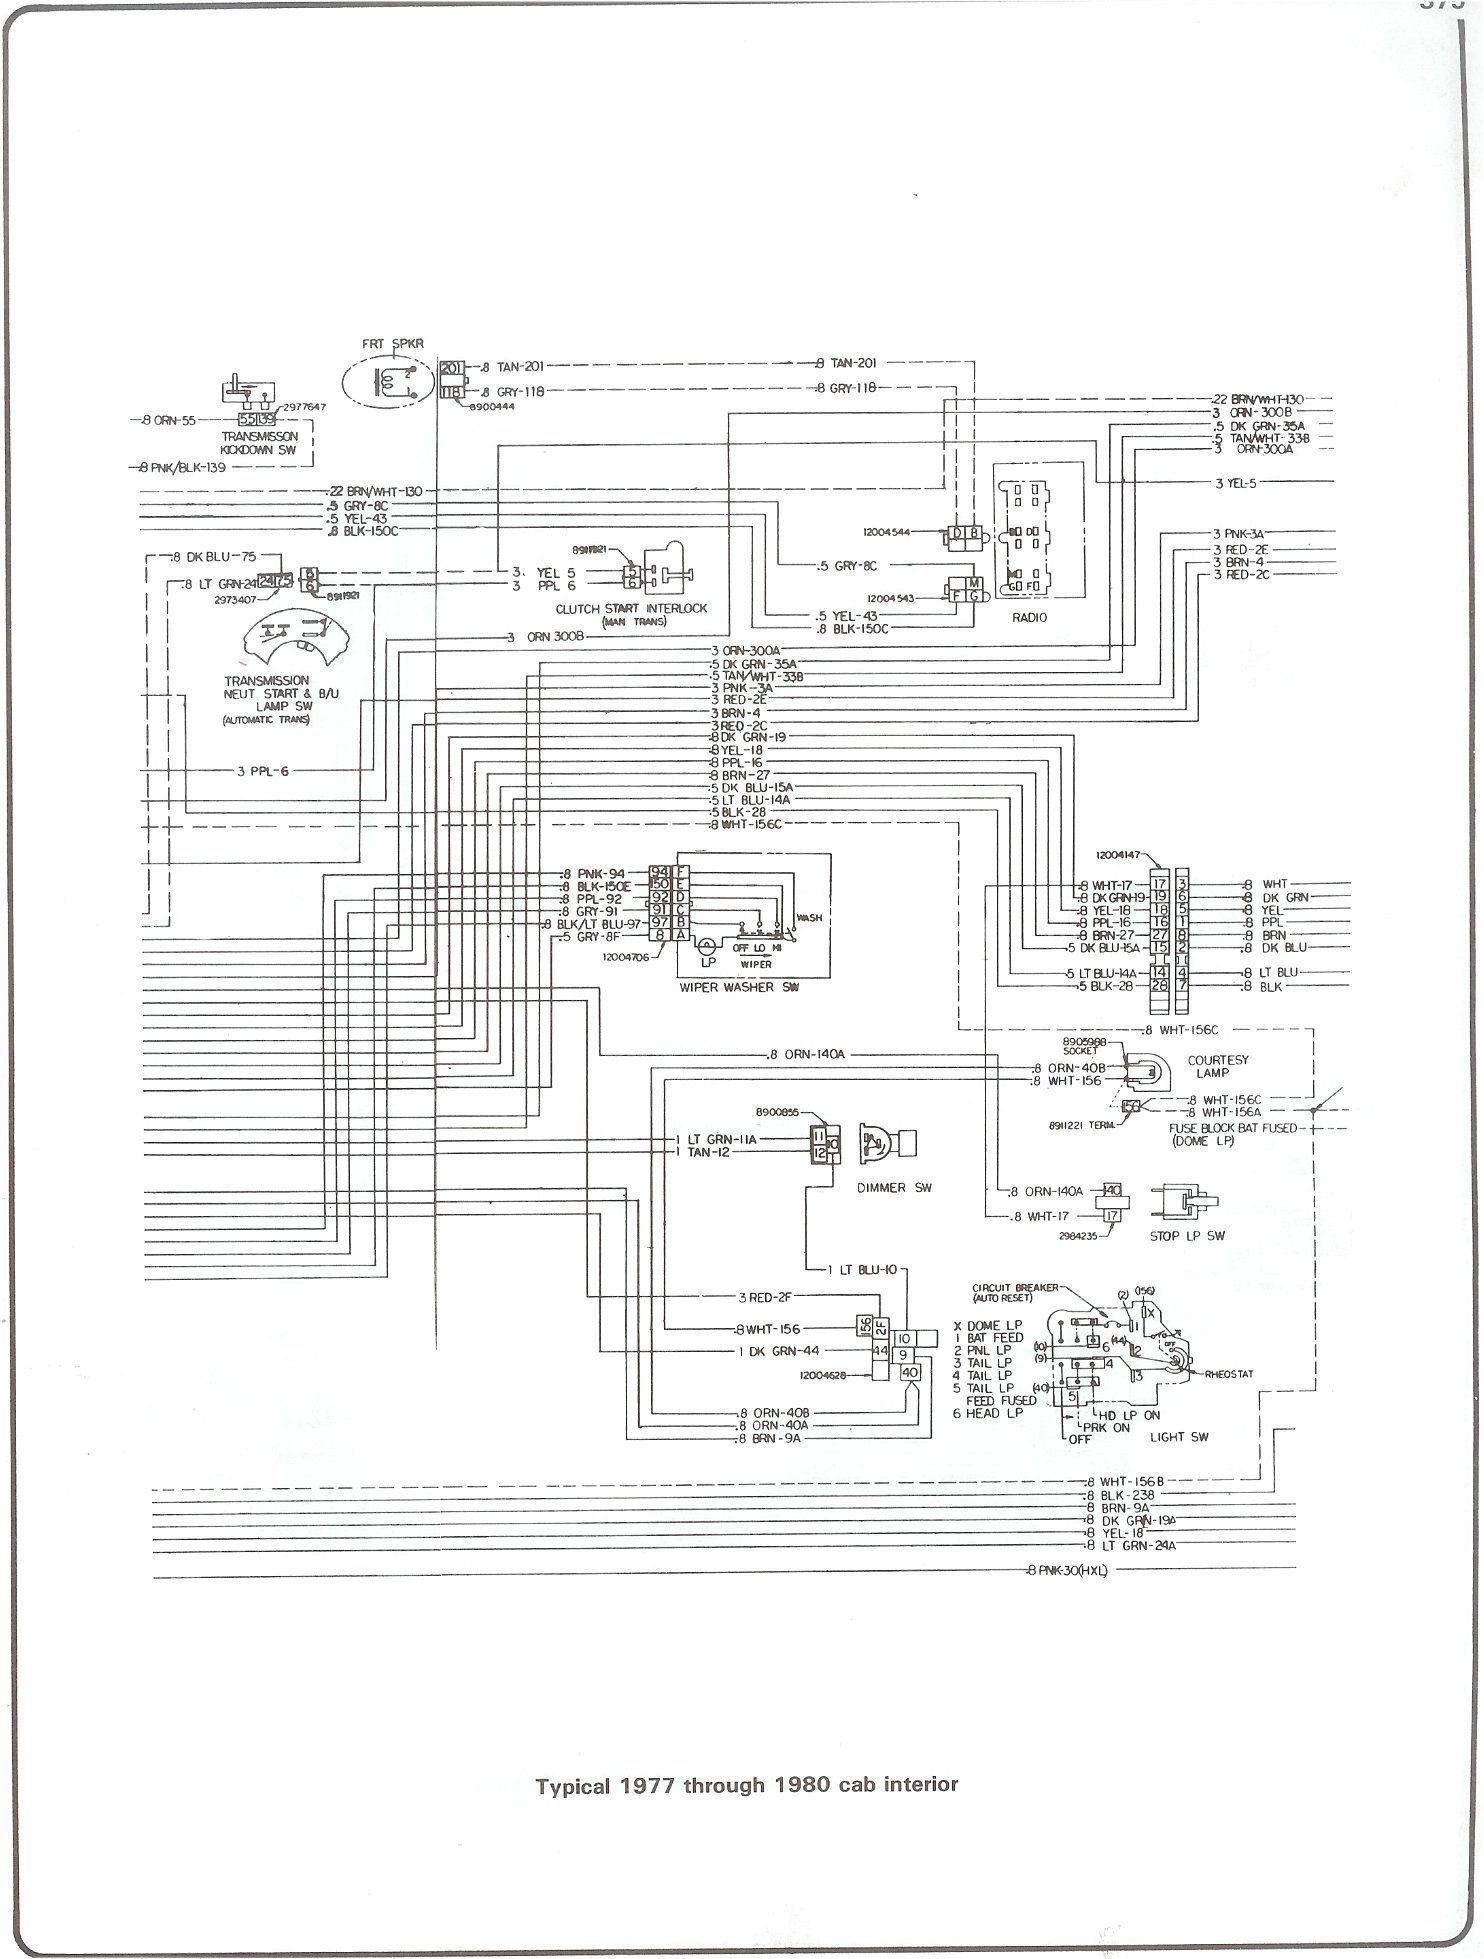 Complete 73 87 Wiring Diagrams 1982 Camaro Diagram Charging System 77 80 Cab Interior